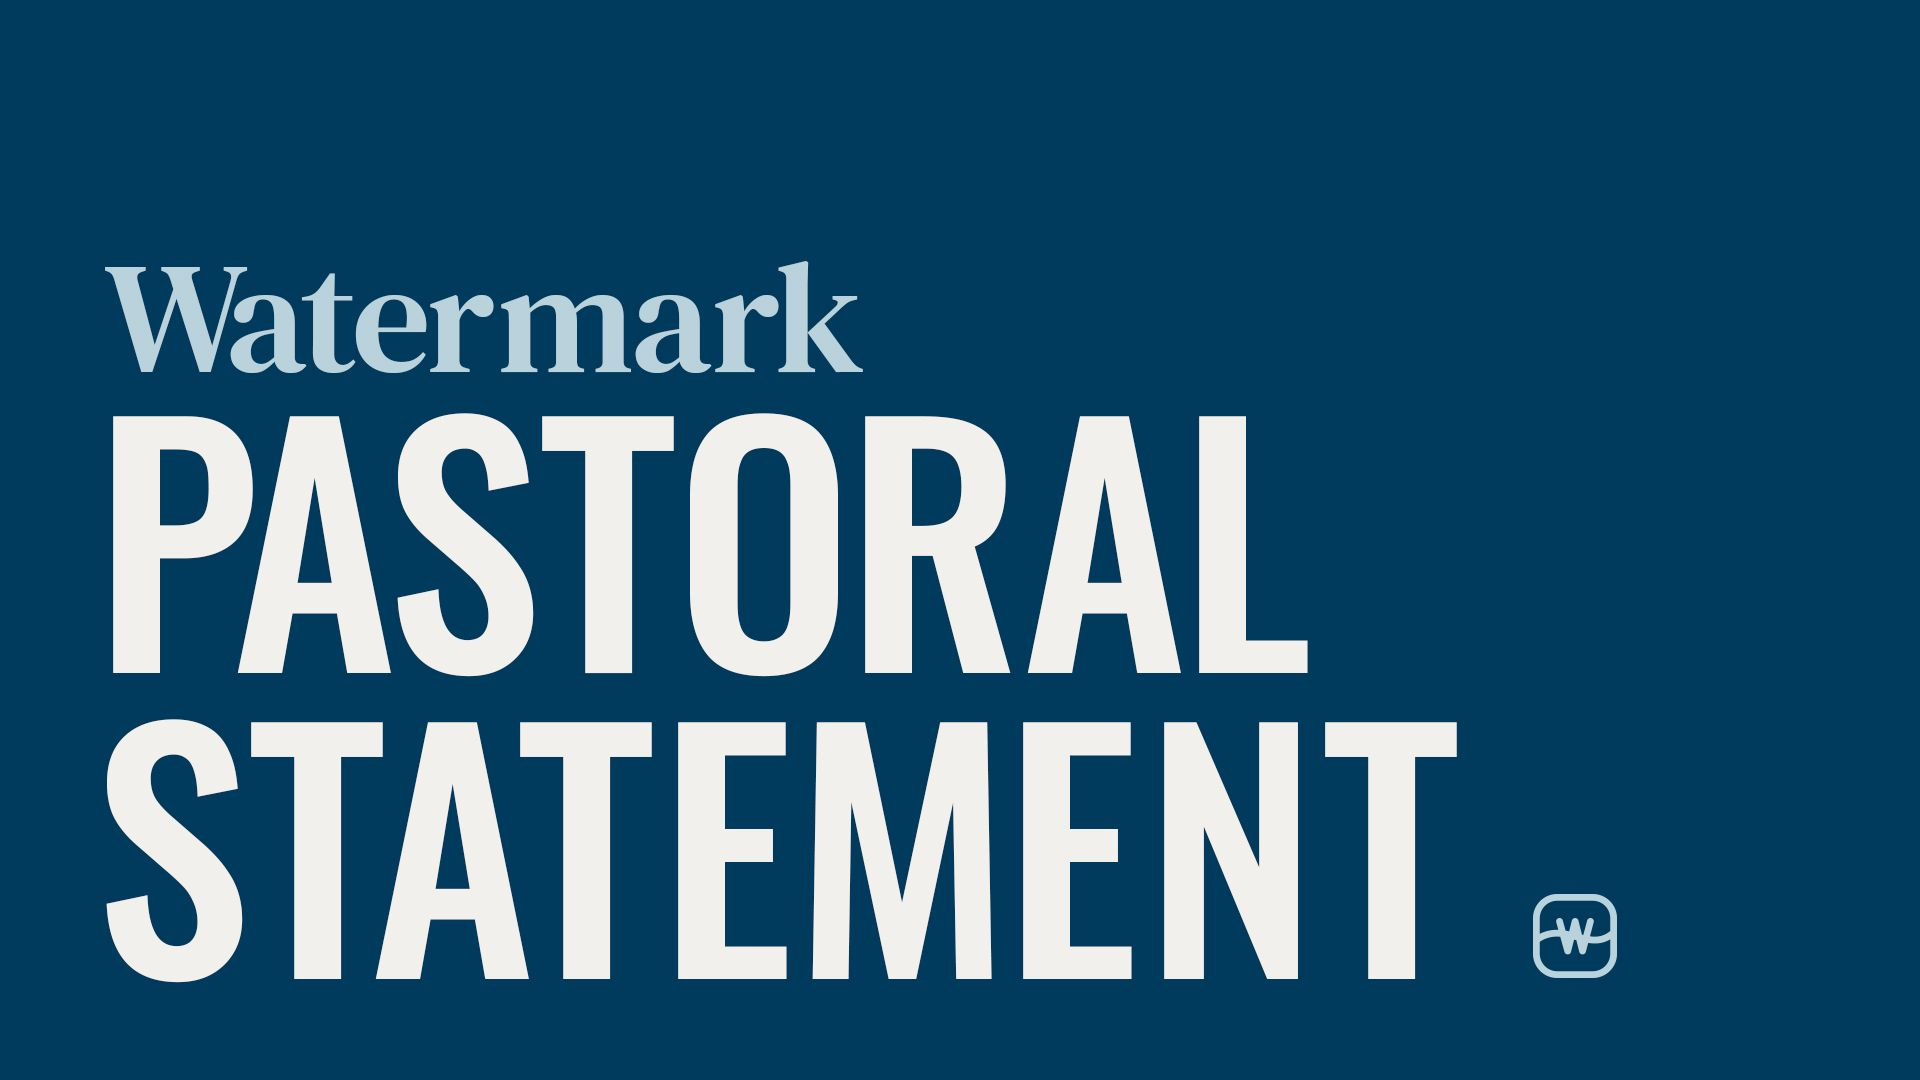 Watermark's Pastoral Statement On Marriage, Divorce And Remarriage Hero Image